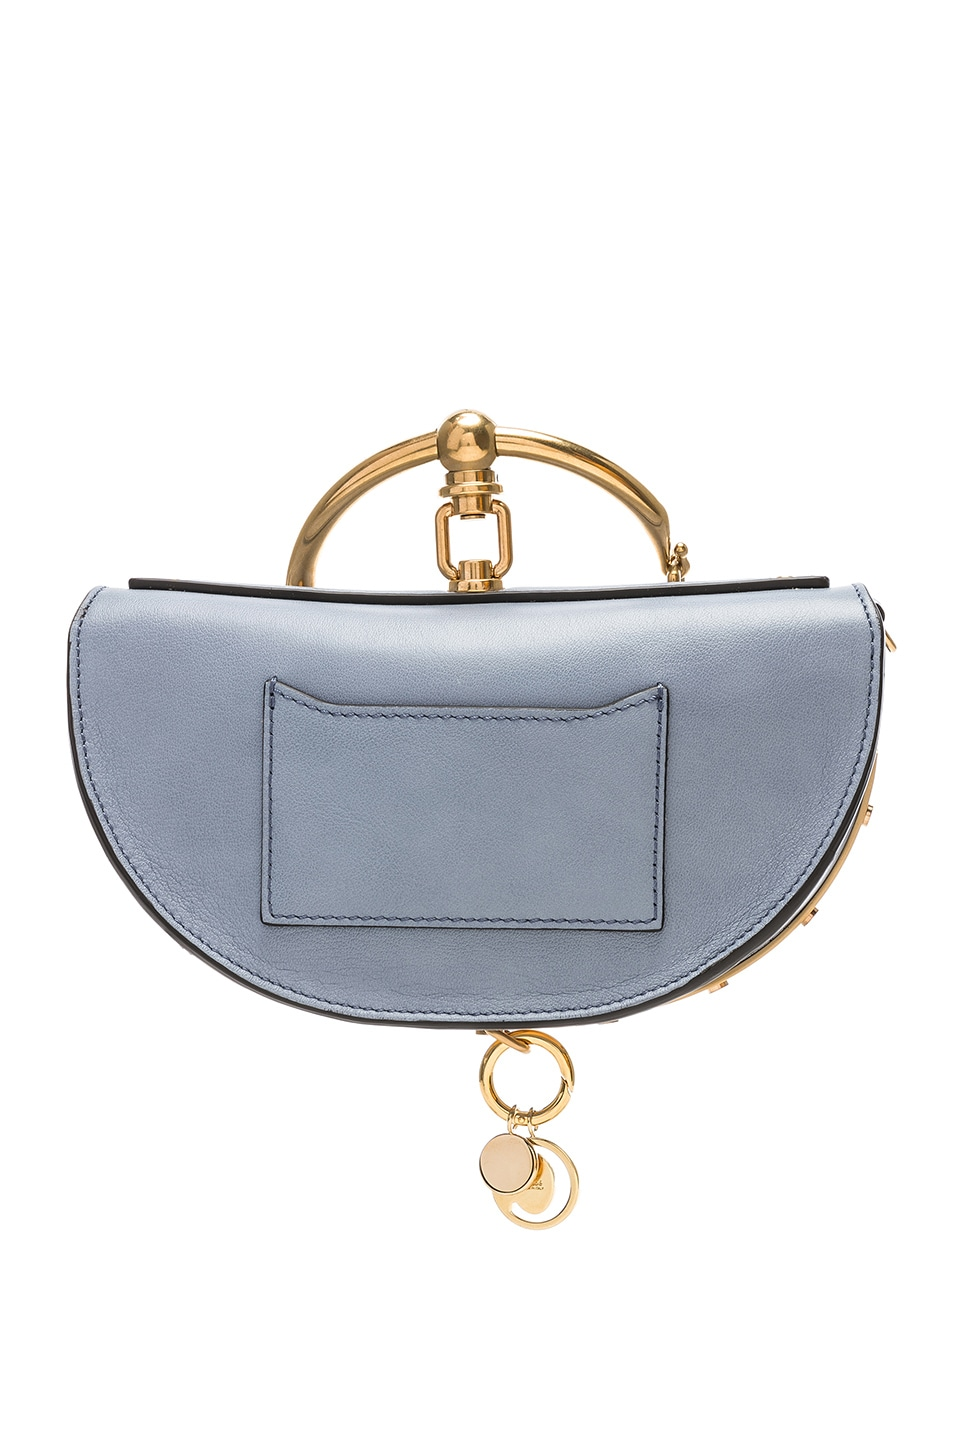 Image 3 of Chloe Small Nile Leather Minaudiere in Washed Blue